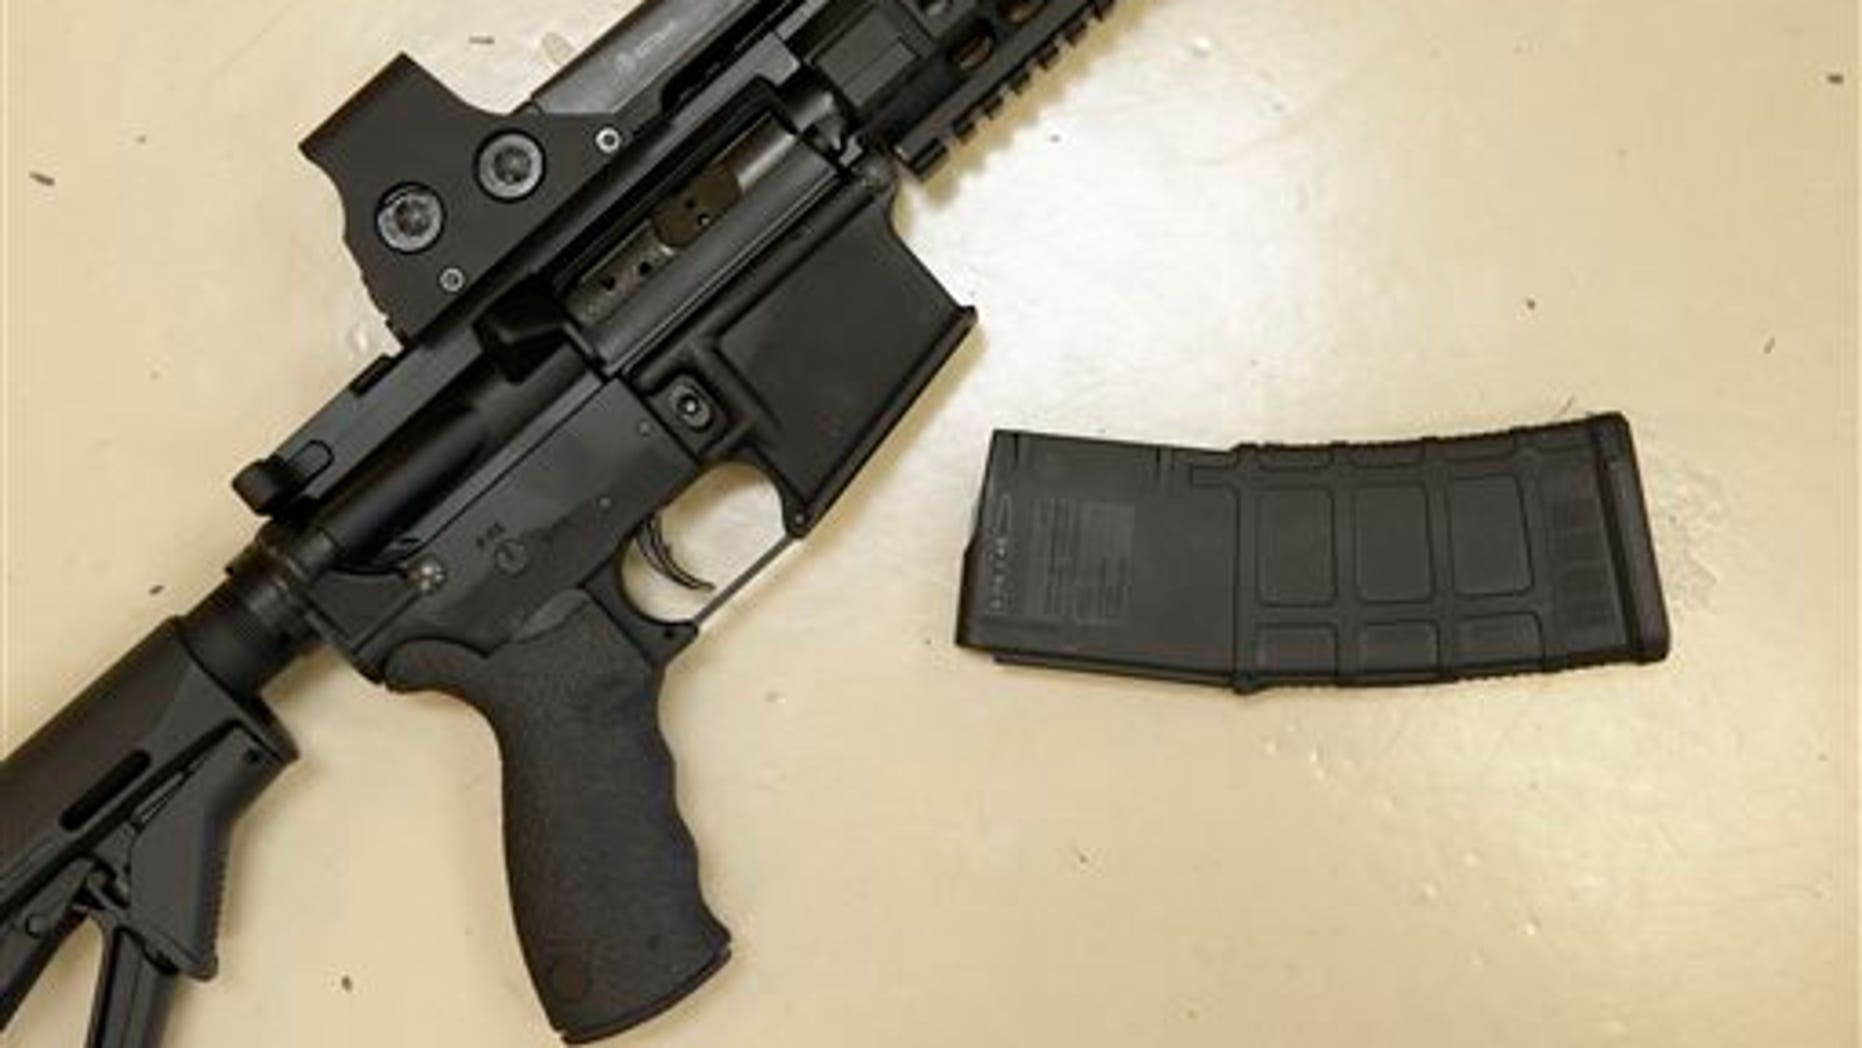 In this file photo, a custom-made semi-automatic hunting rifle with a high-capacity detachable magazine is displayed at TDS Guns in Rocklin, Calif. Calif. (AP Photo/Rich Pedroncelli)